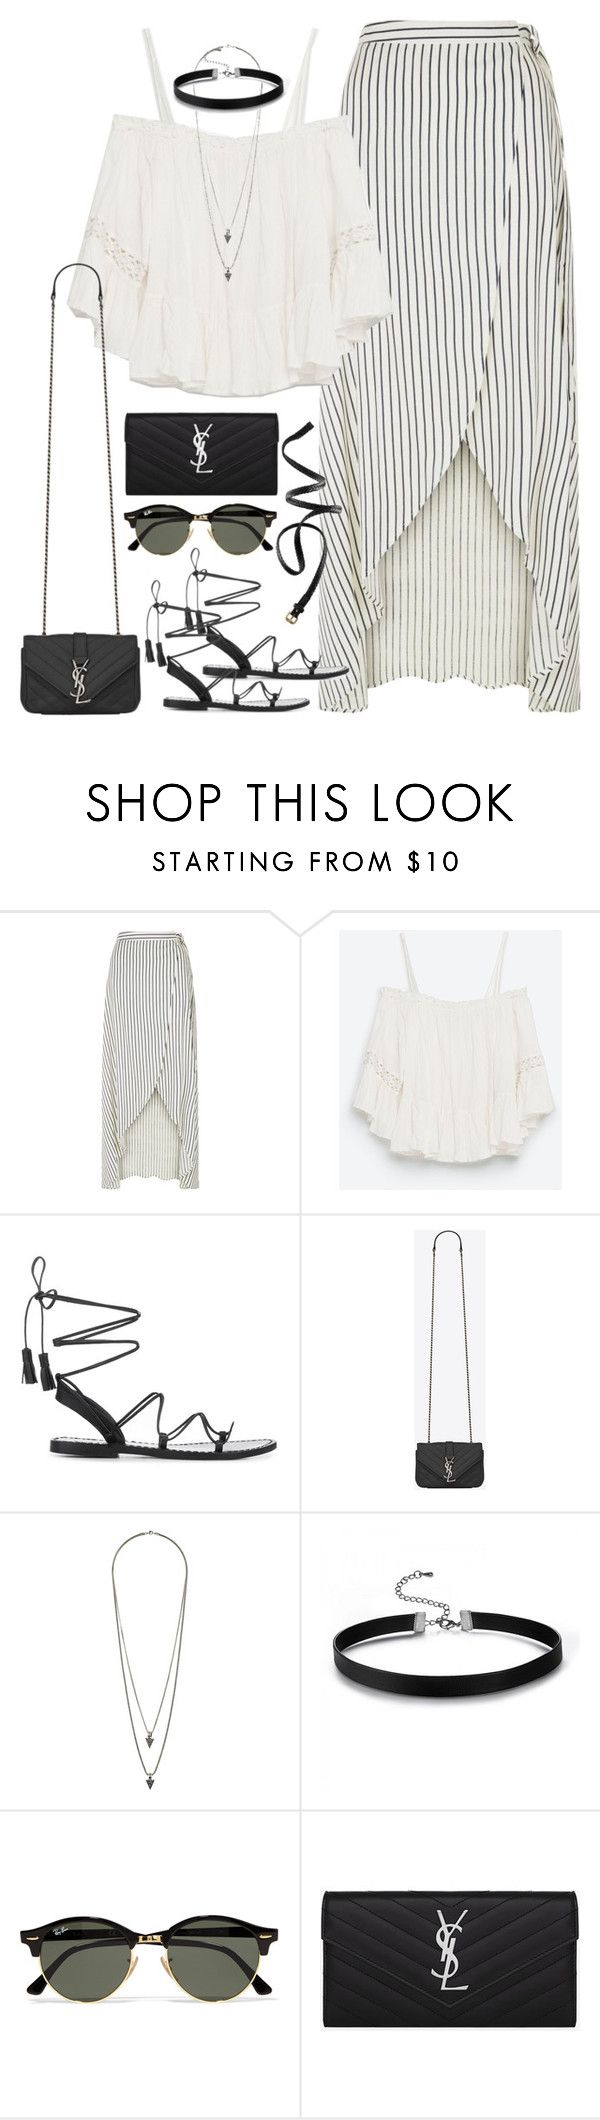 """""""Untitled#4371"""" by fashionnfacts ❤ liked on Polyvore featuring New Look, Zara, Anine Bing, Yves Saint Laurent, Wallis, Ray-Ban and H&M"""